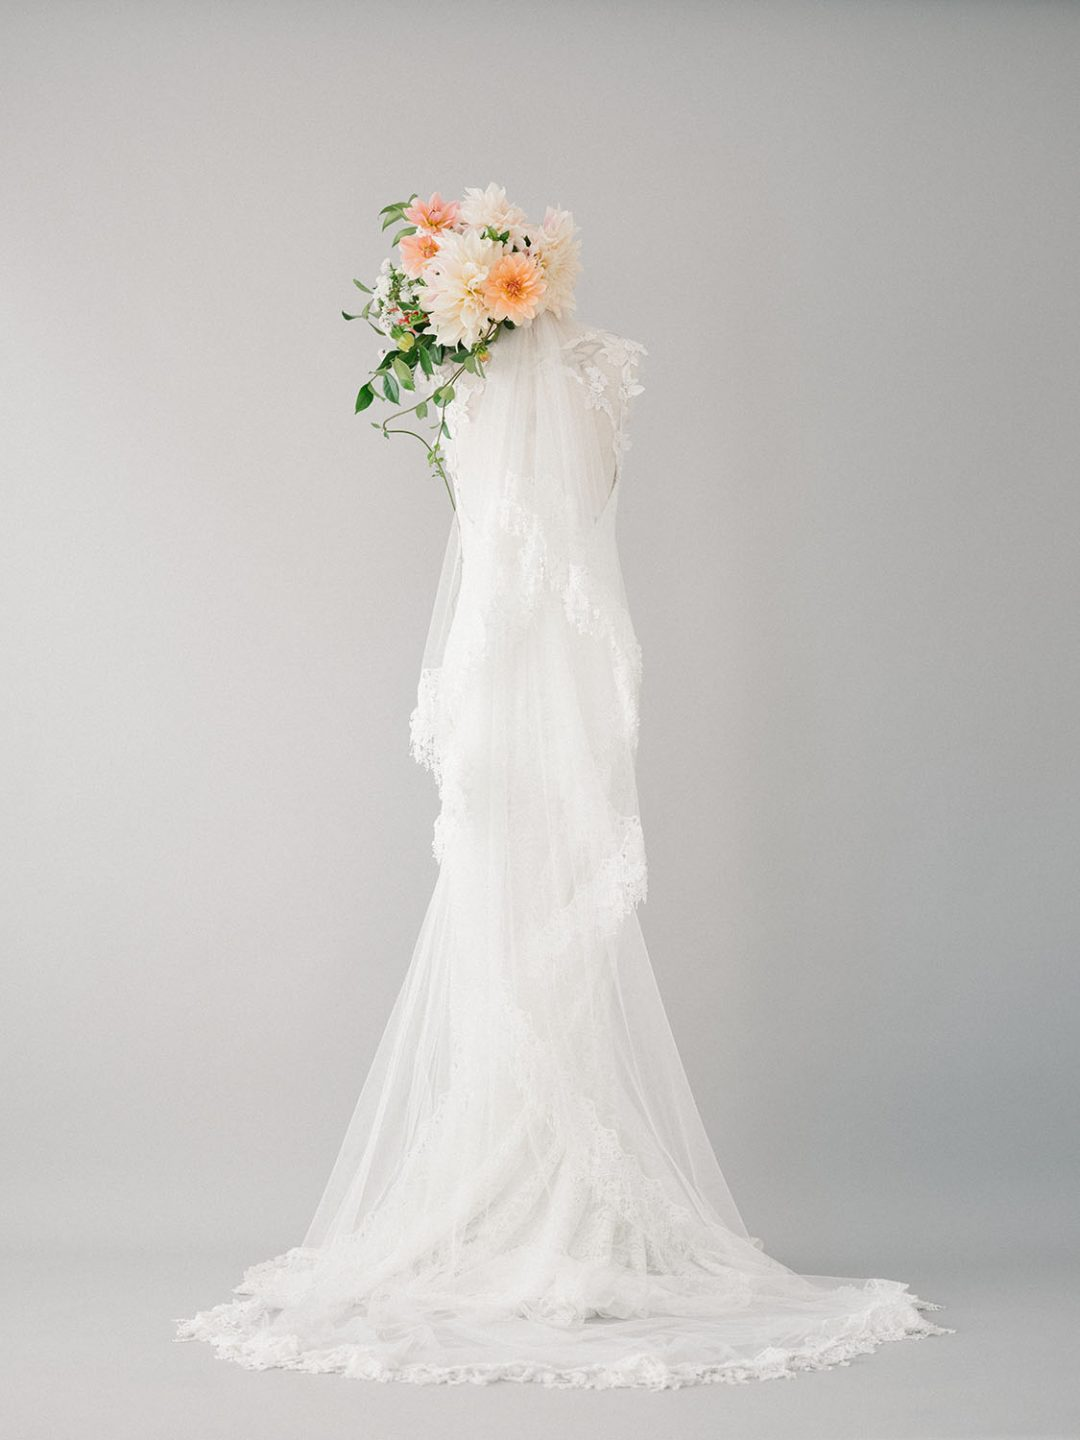 Lace Tassel Bridal Veil - Style 823 - SIBO Designs www.sibodesigns.com